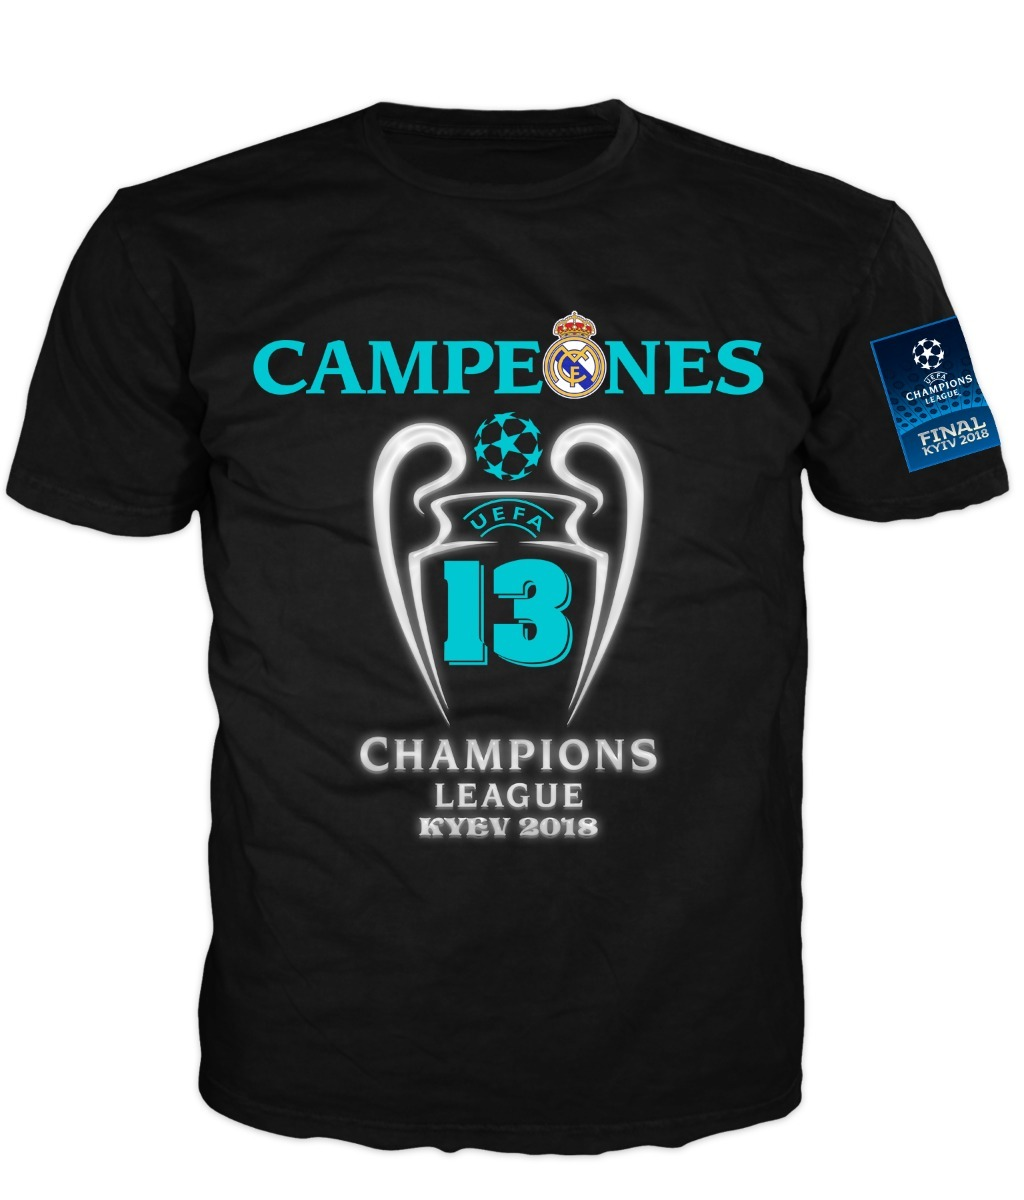 Real Madrid Campeon Champios League Playera Conmemorativa -   300.00 ... 7341ef632a87d